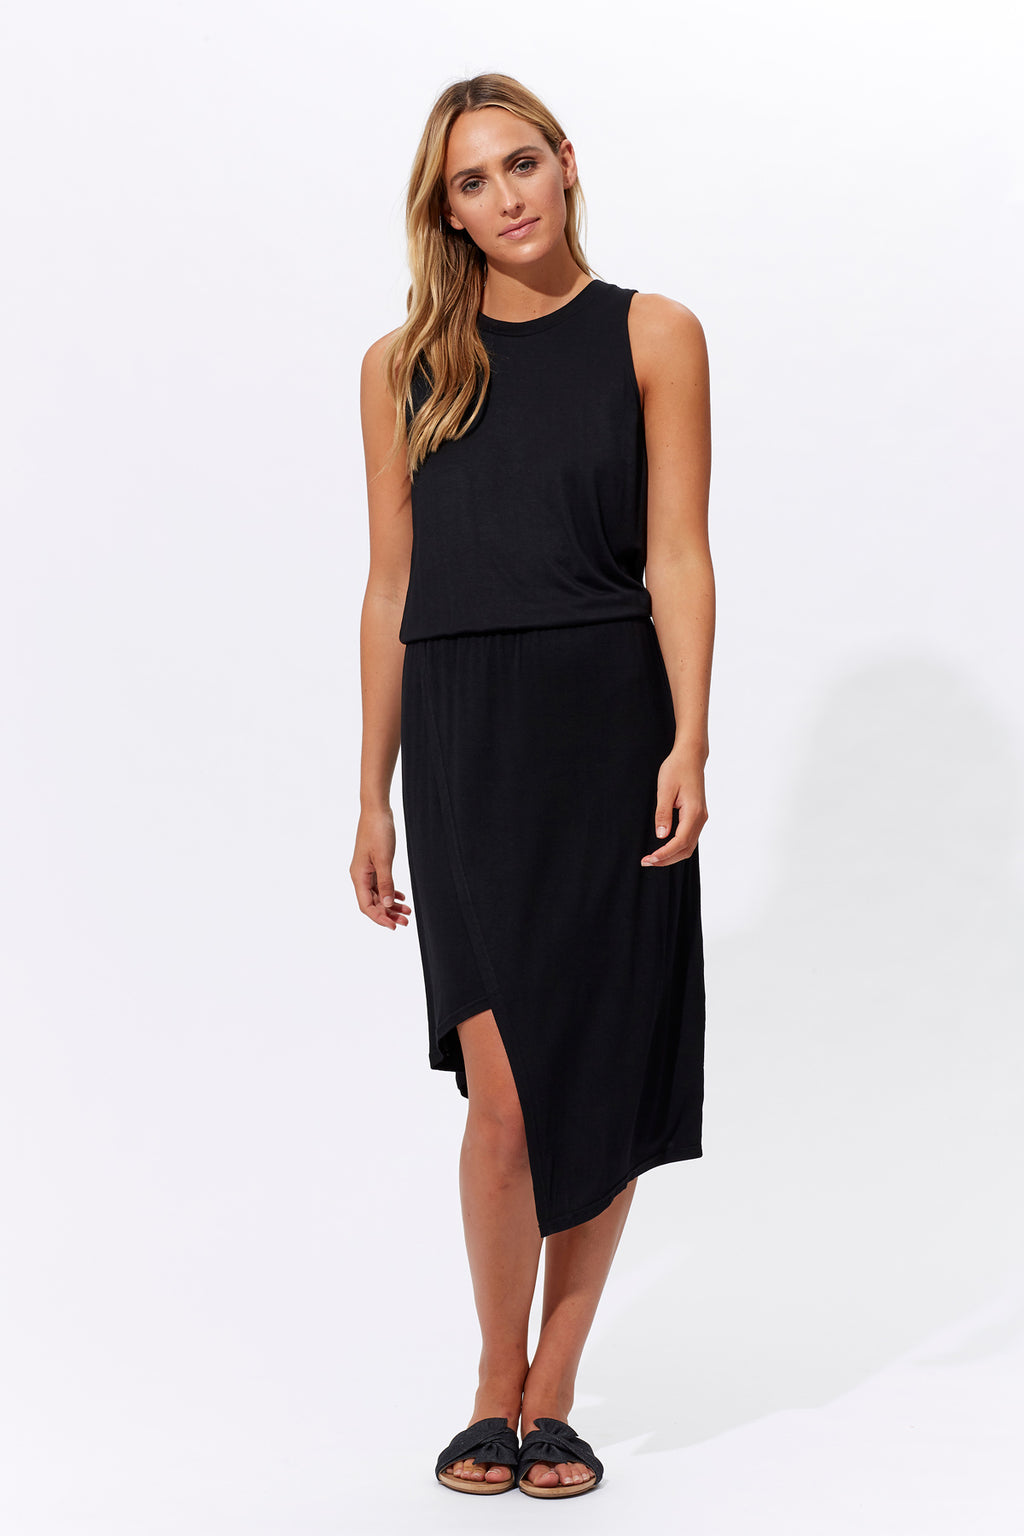 Inez Dress - Jet - Isle of Mine Clothing - Dress Mid